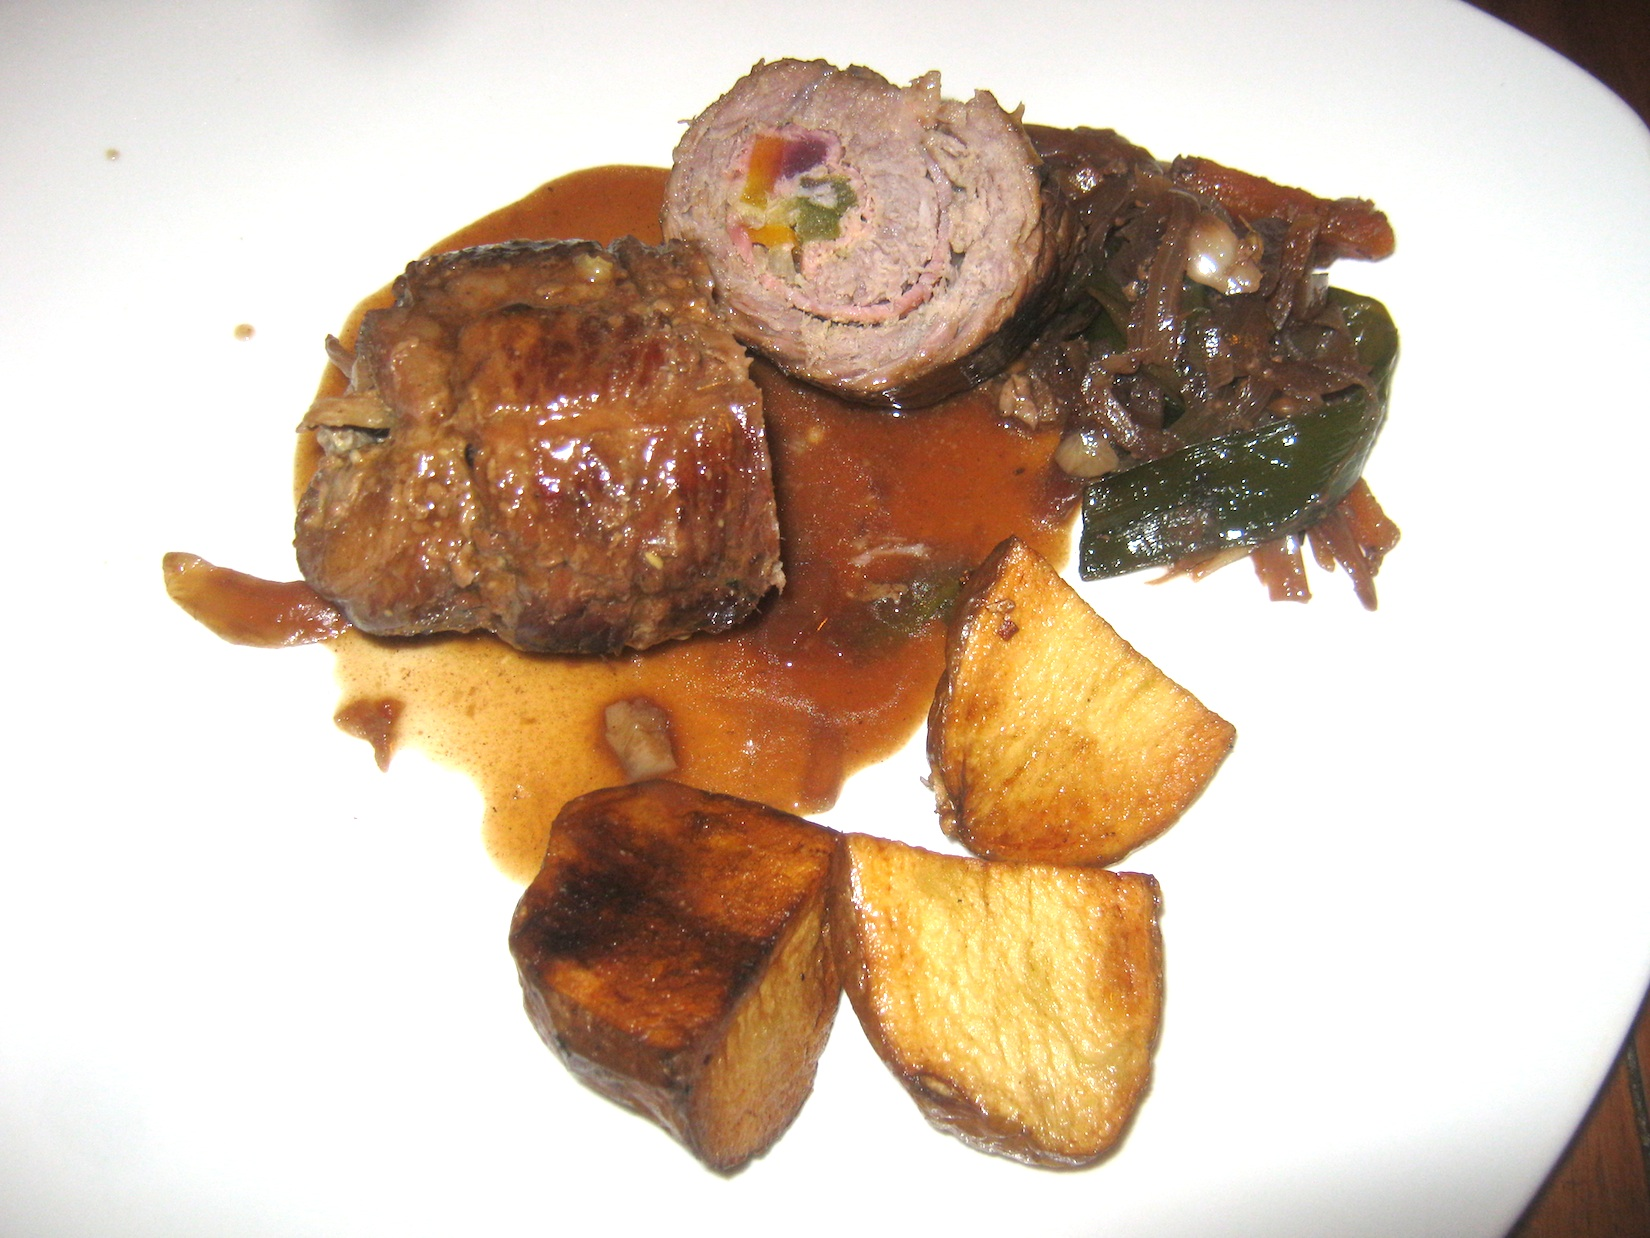 Beef Roulade (Rinderroulade) with deep fried potatoes, gravy and braised vegetables